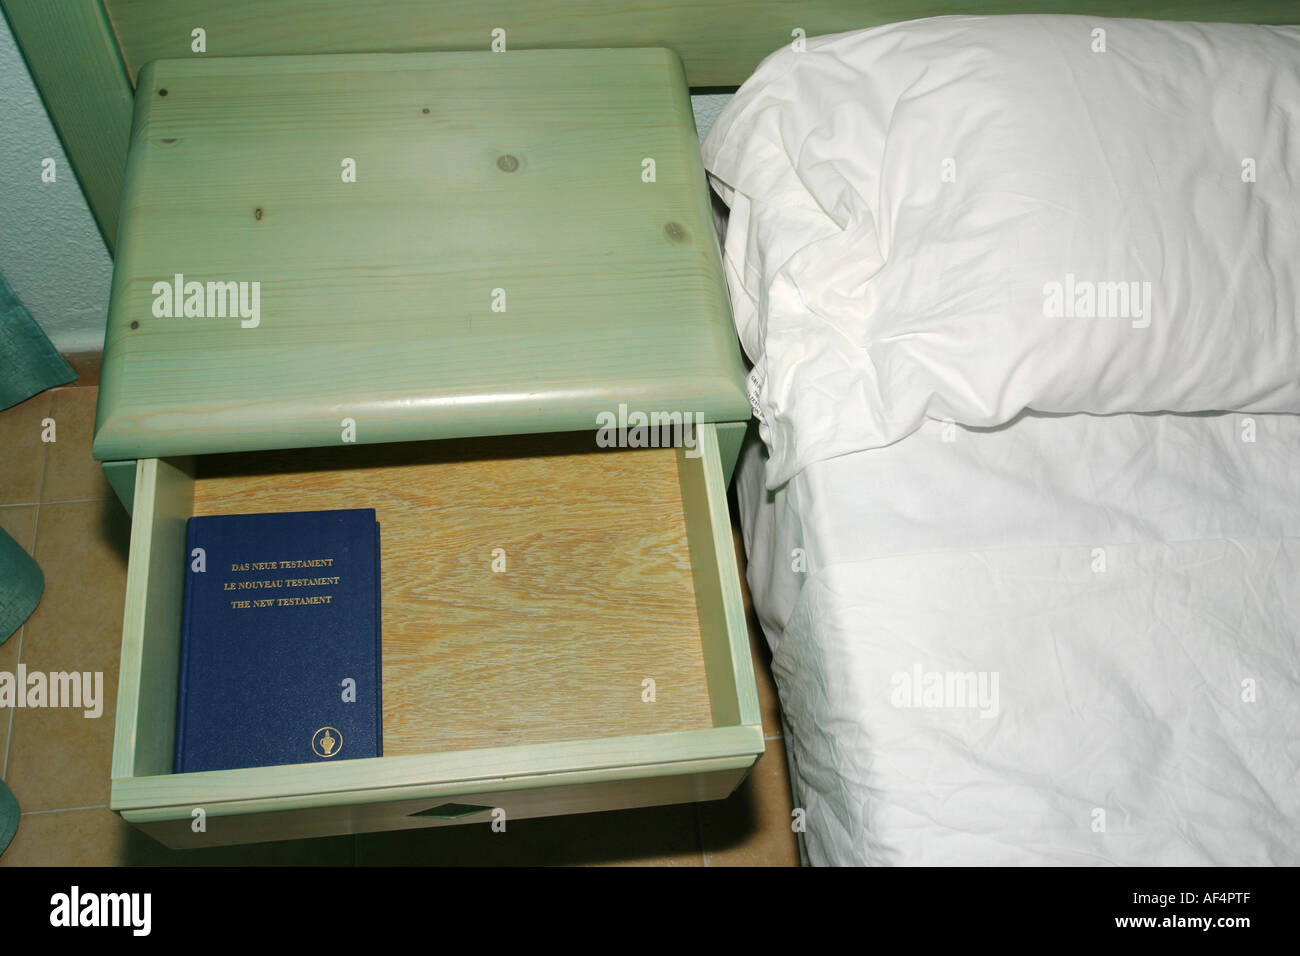 The New Testament in a hotel drawer put there by the Gideons - Stock Image